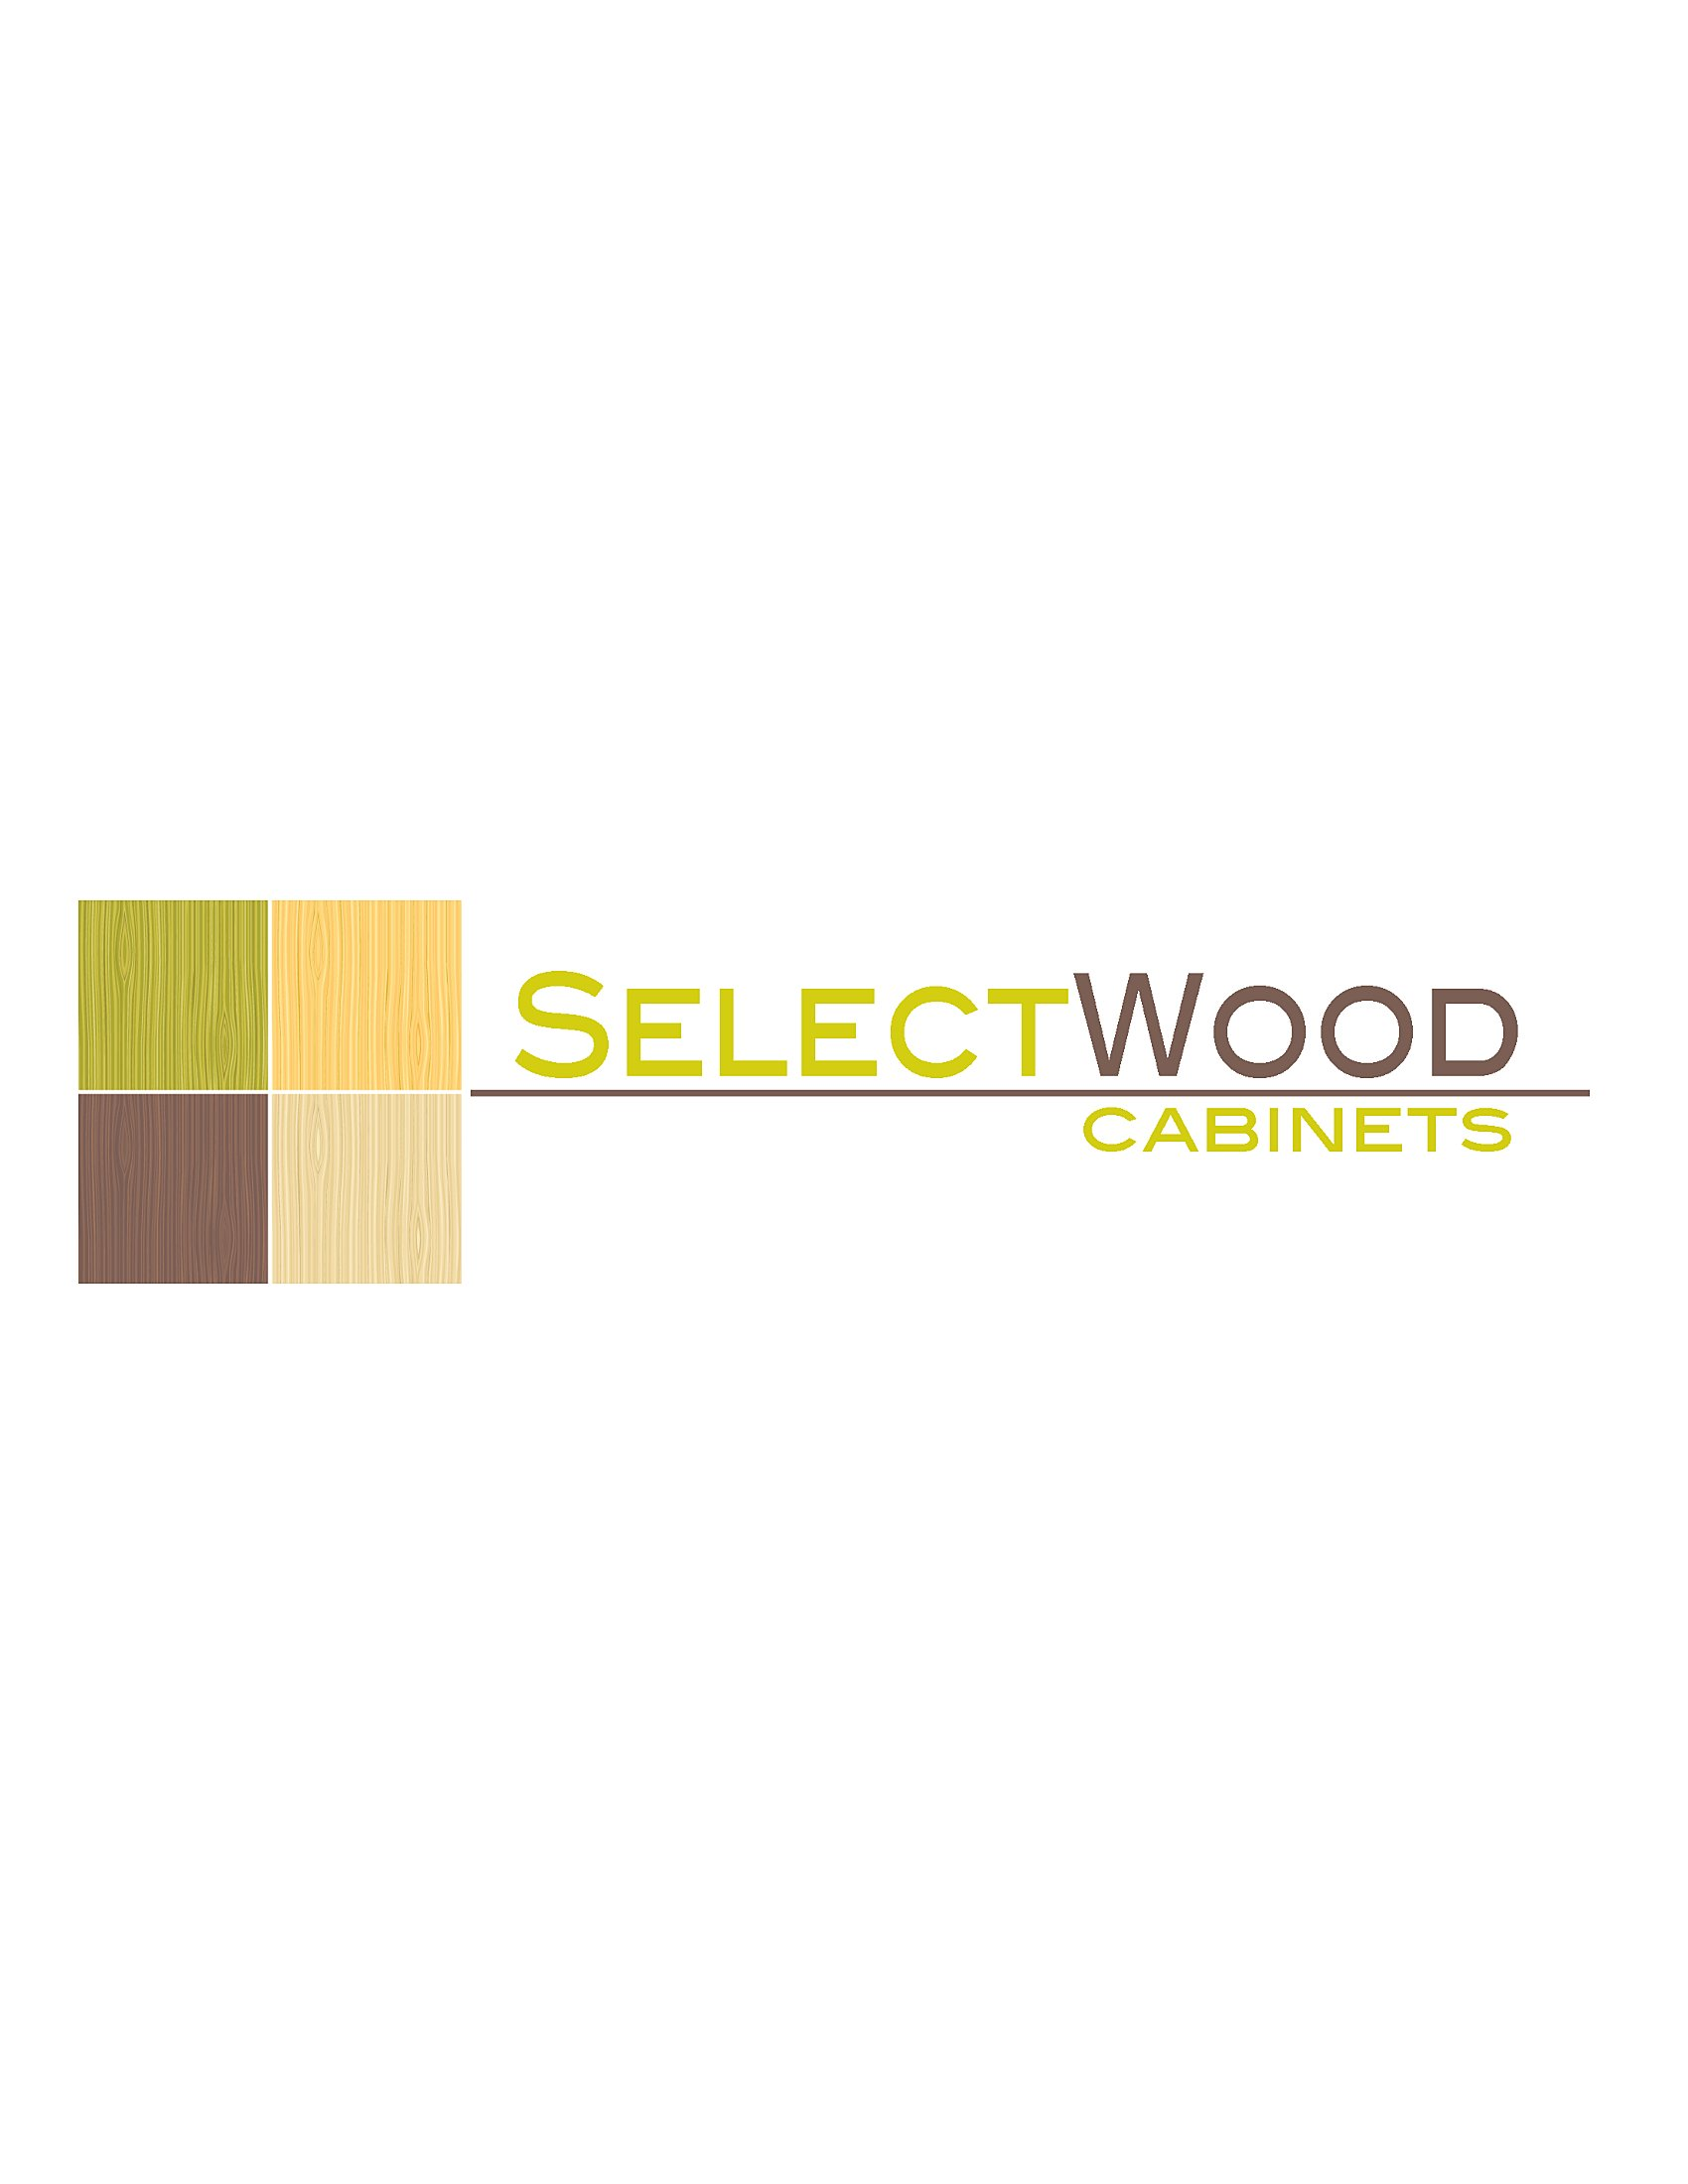 Selectwood Cabinets Mfg